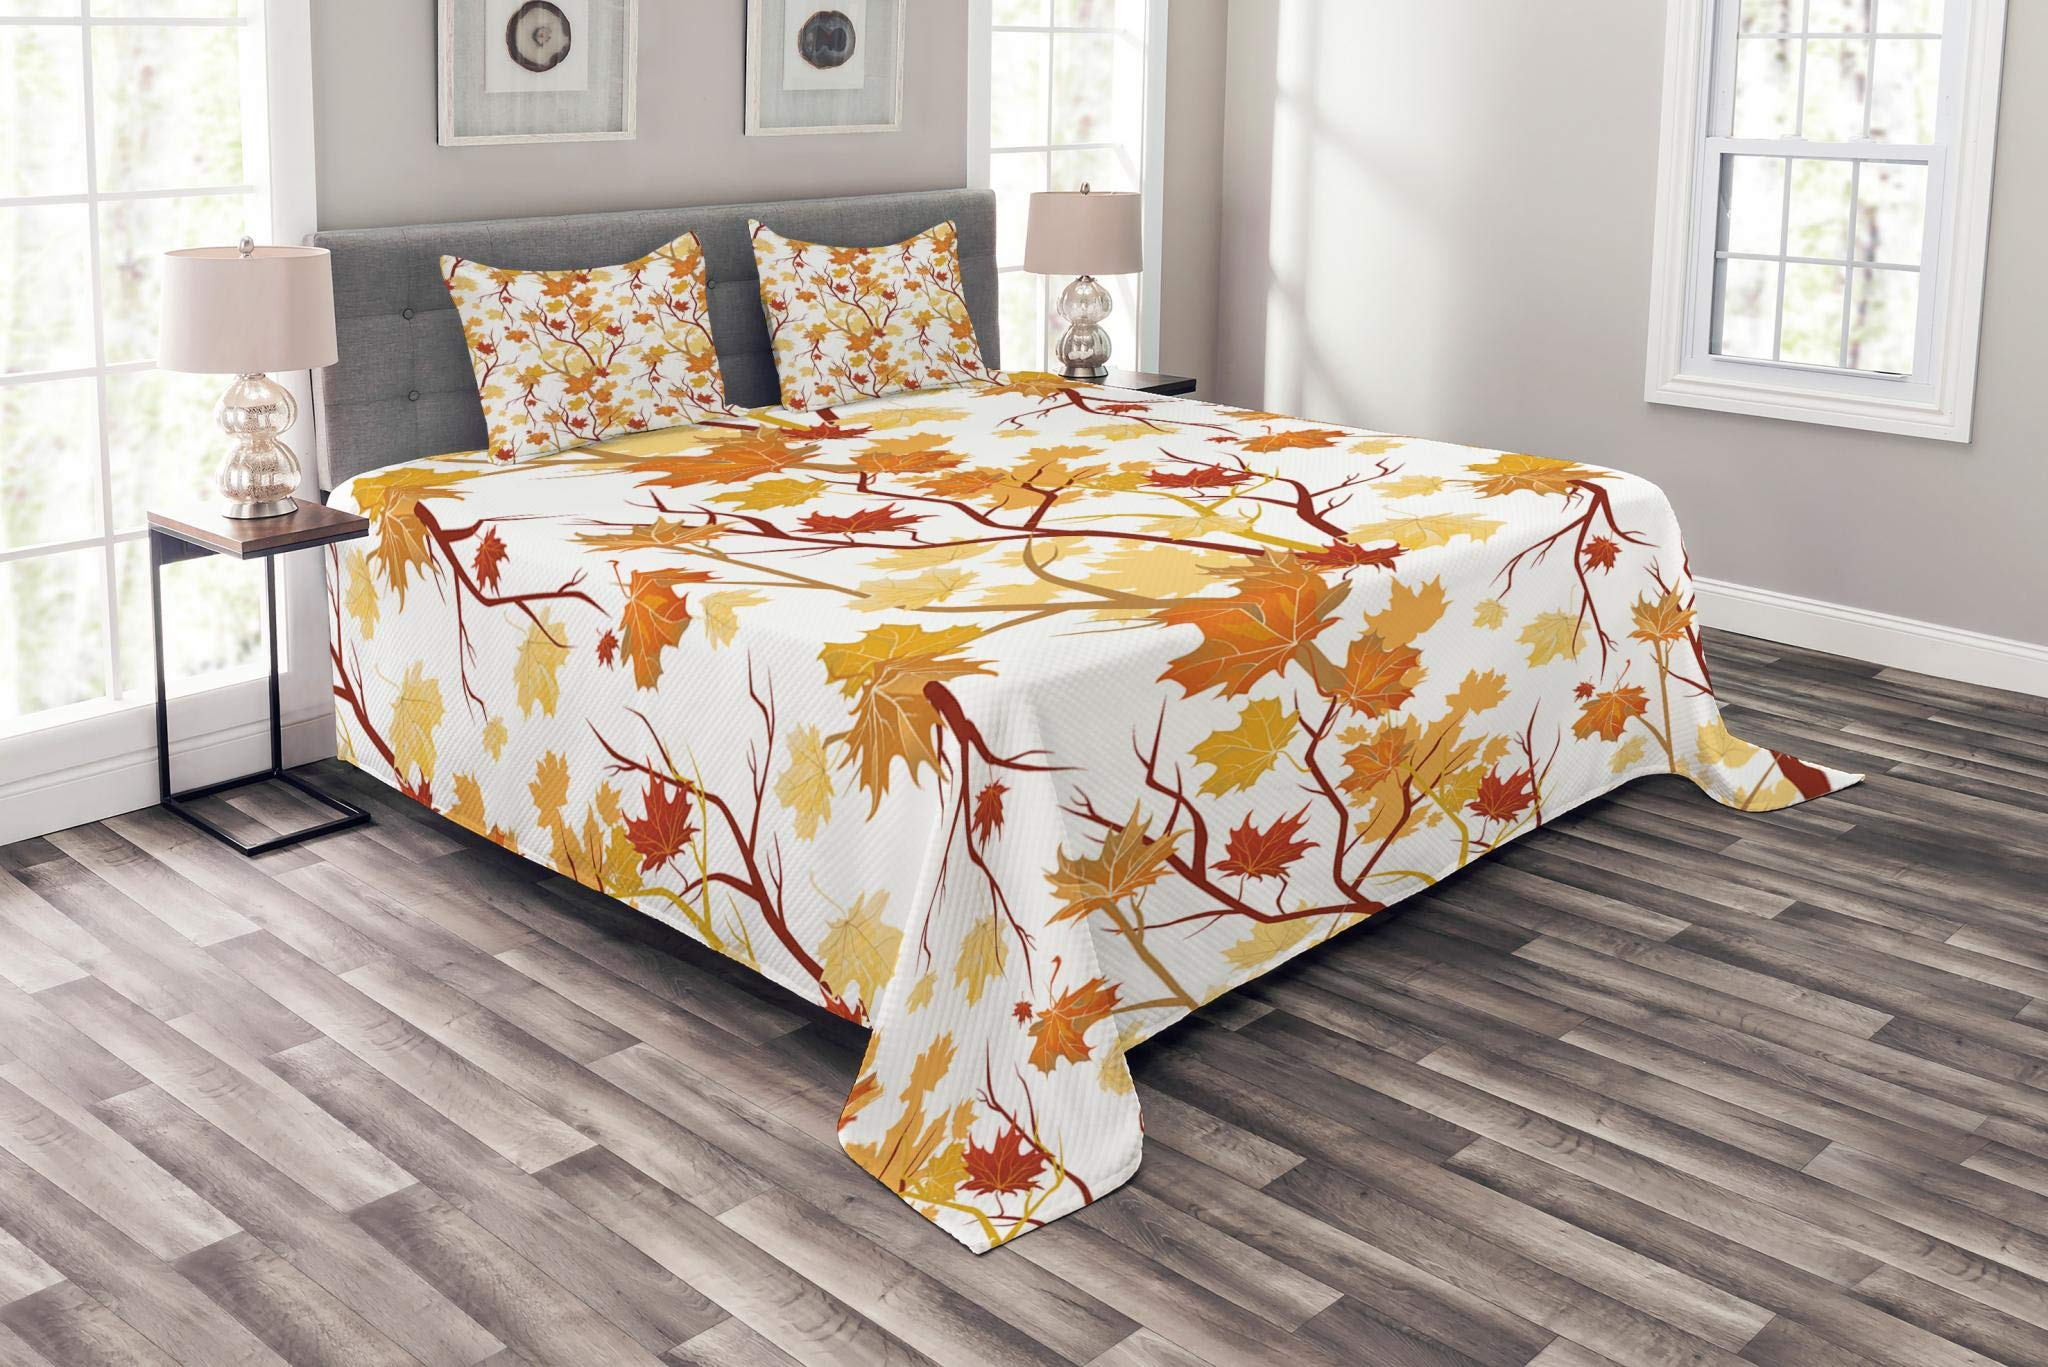 Lunarable Fall Bedspread, Swirling Fall Leaves with Shady Seasonal Elements Aesthetic Nature Image, Decorative Quilted 3 Piece Coverlet Set with 2 Pillow Shams, King Size, Tan Yellow